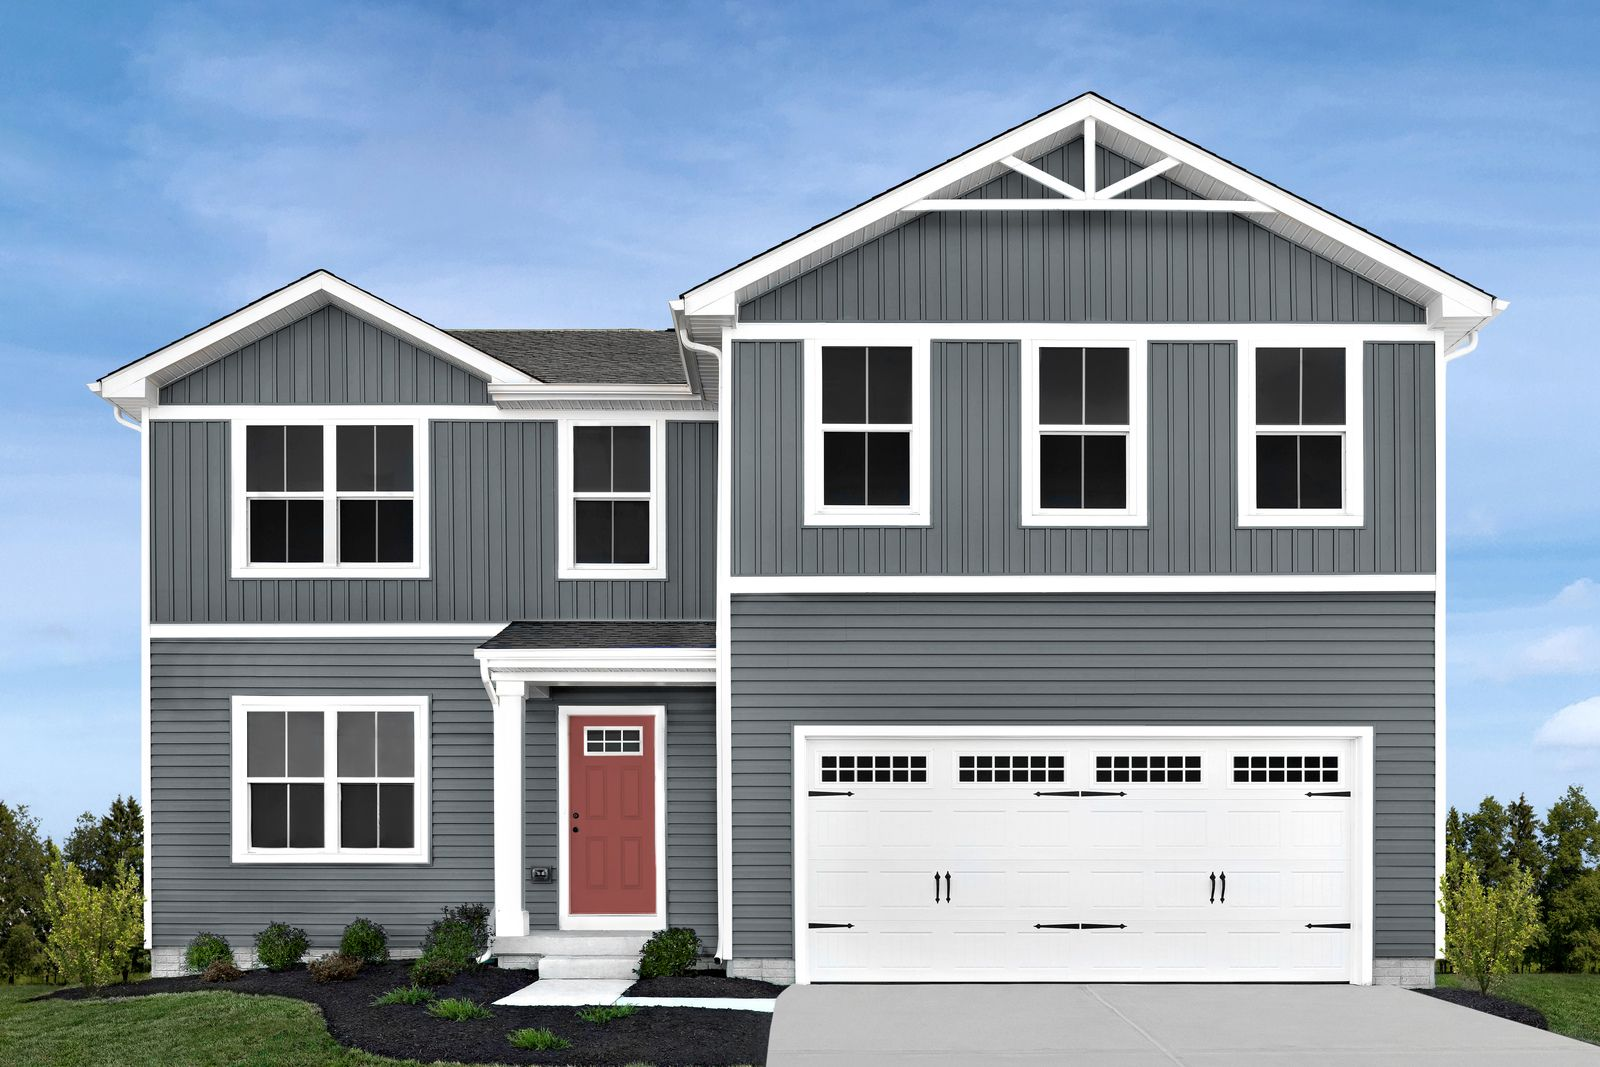 Welcome to Walnut Run!:Affordable new homes in Groveport Madison schools, 2-car garage, full basement and appliances included for little to no money down. Close to I-270—upper $200s.Schedule an appointment today!